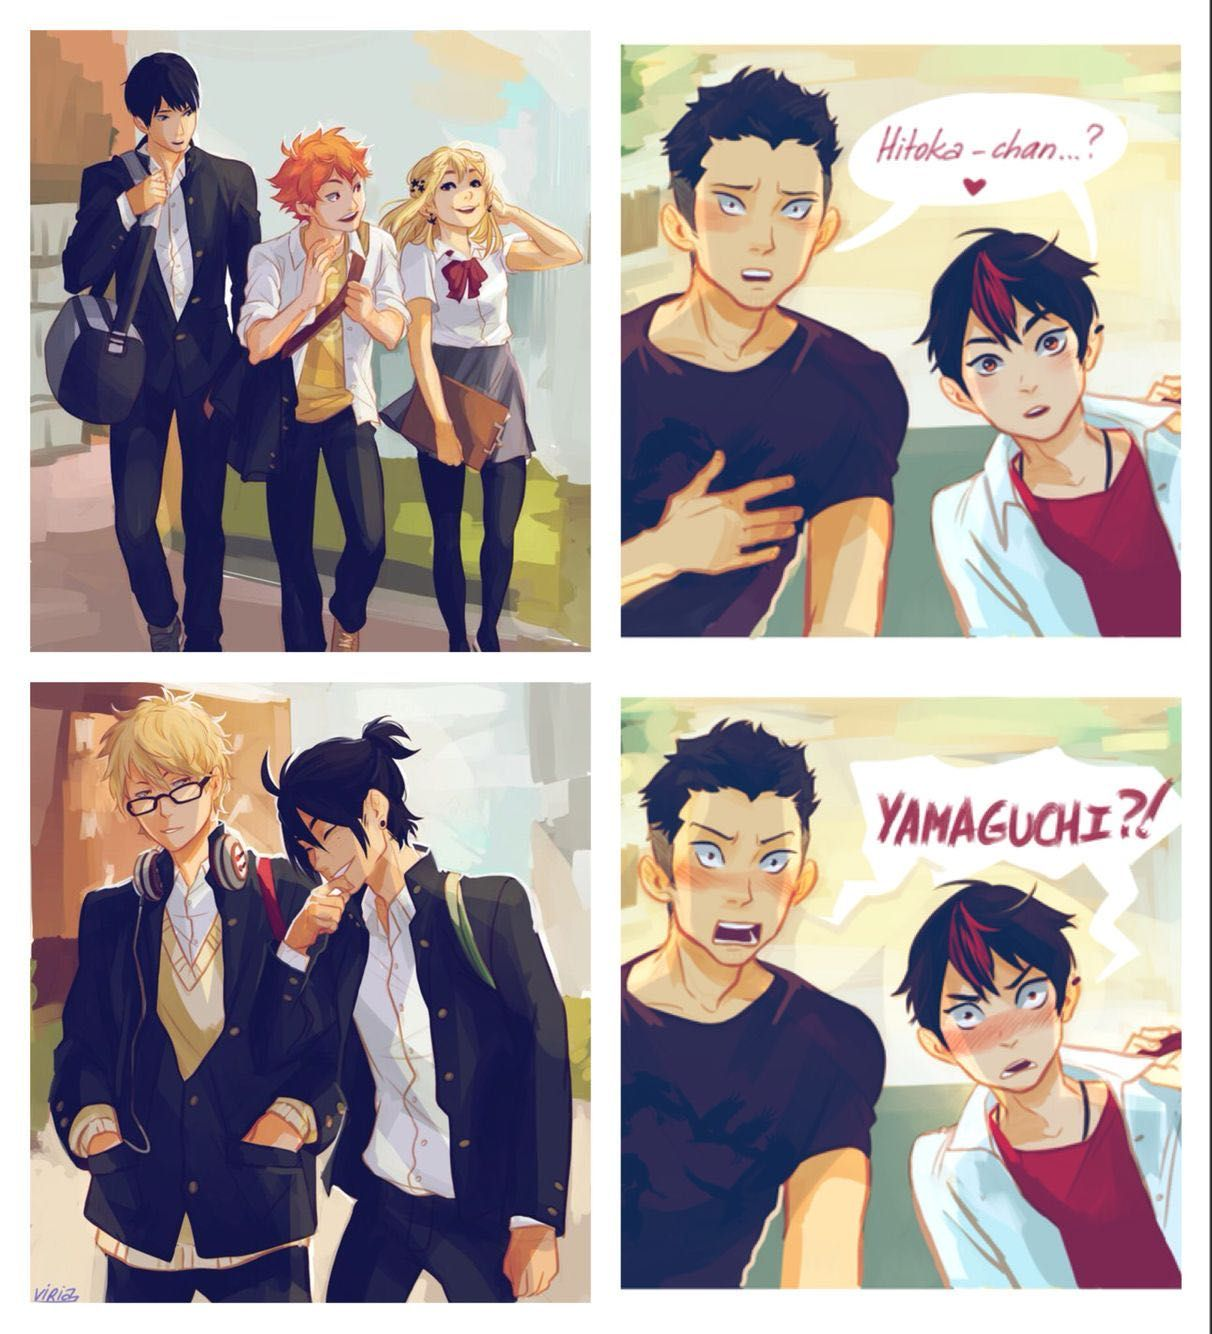 The Boy with Chained Wings - Tsukihina - Chapter 2